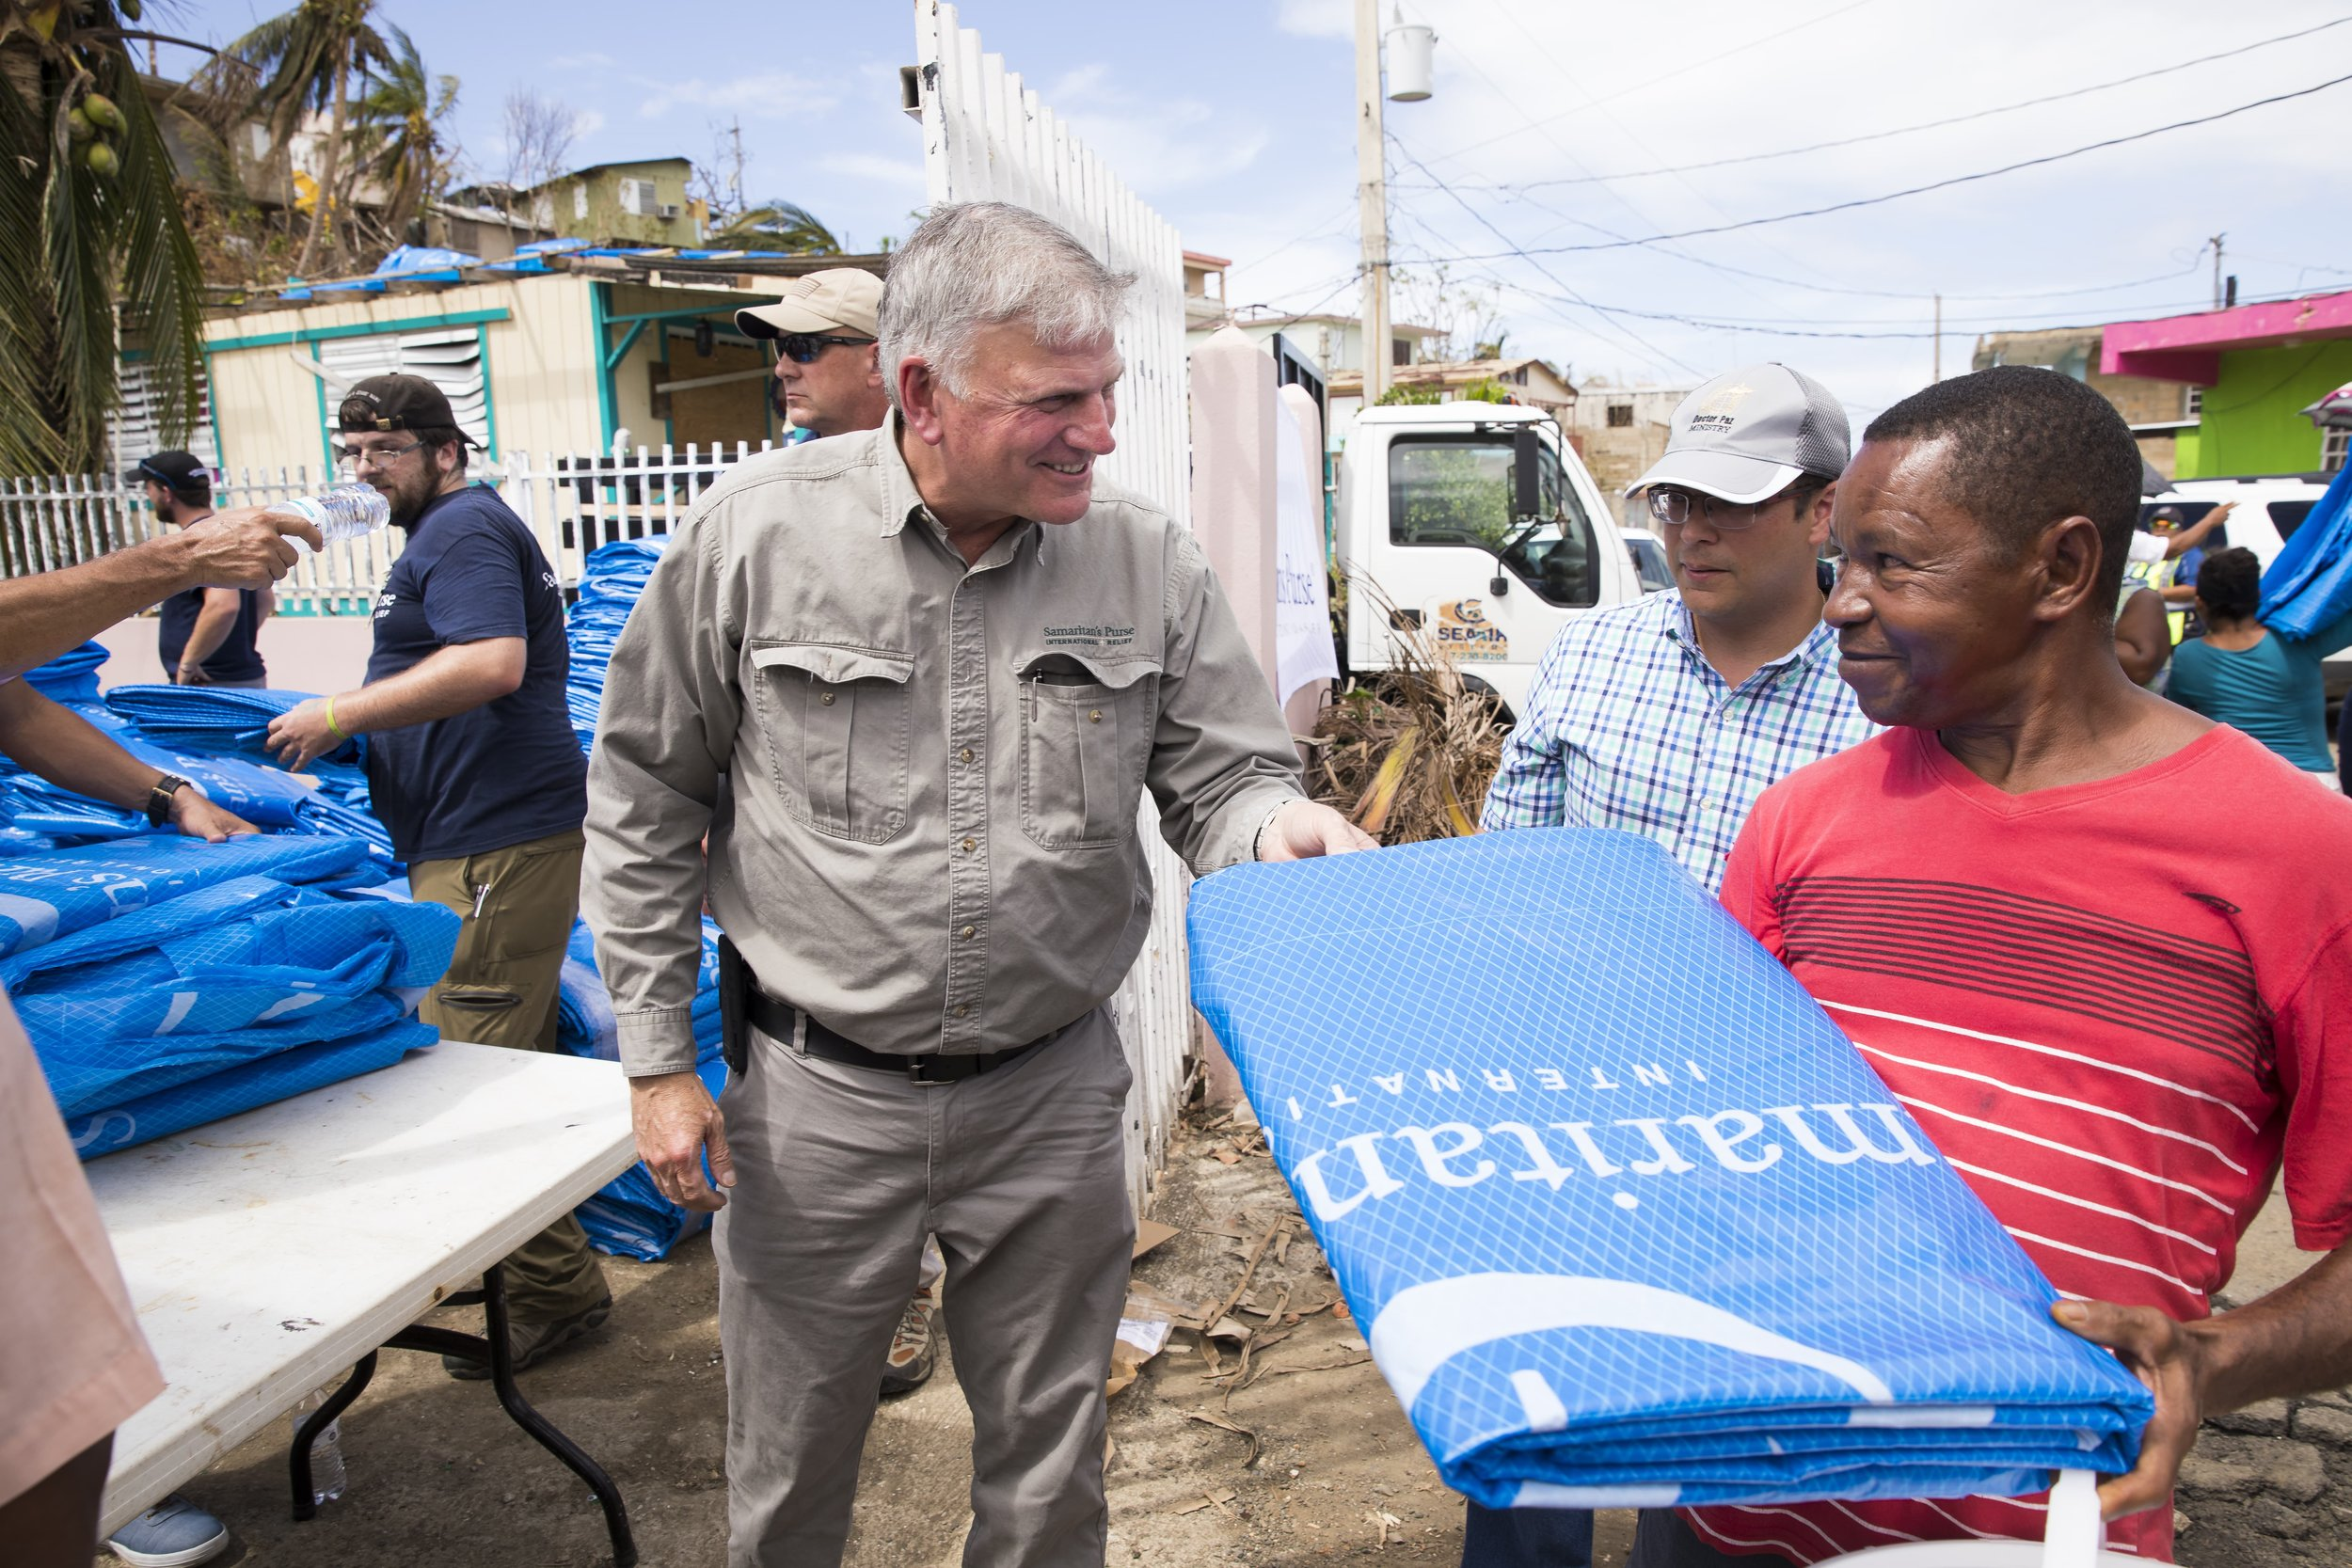 Franklin Graham distributes solar lights and tarp for emergency shelter to families in Puerto Rico devastated by Hurricane Maria. Photo courtesy of Samaritan's Purse.